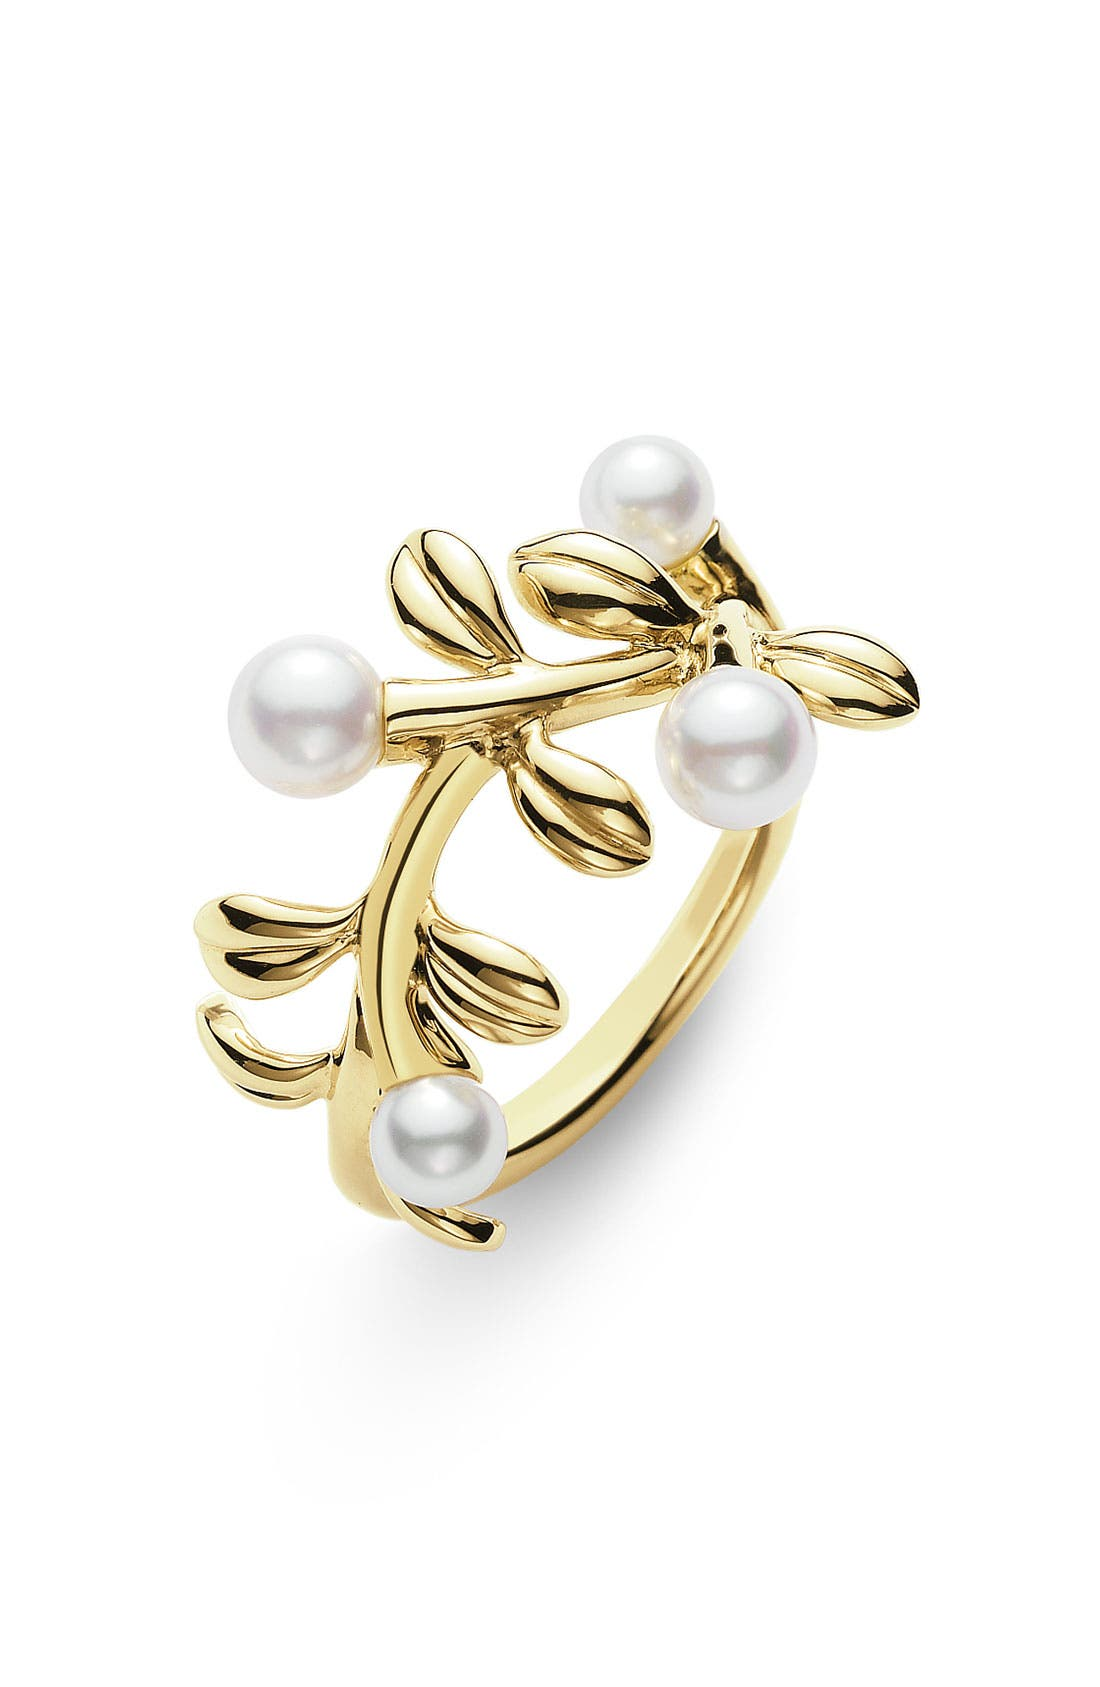 Alternate Image 1 Selected - Mikimoto Akoya Cultured Pearl Ring